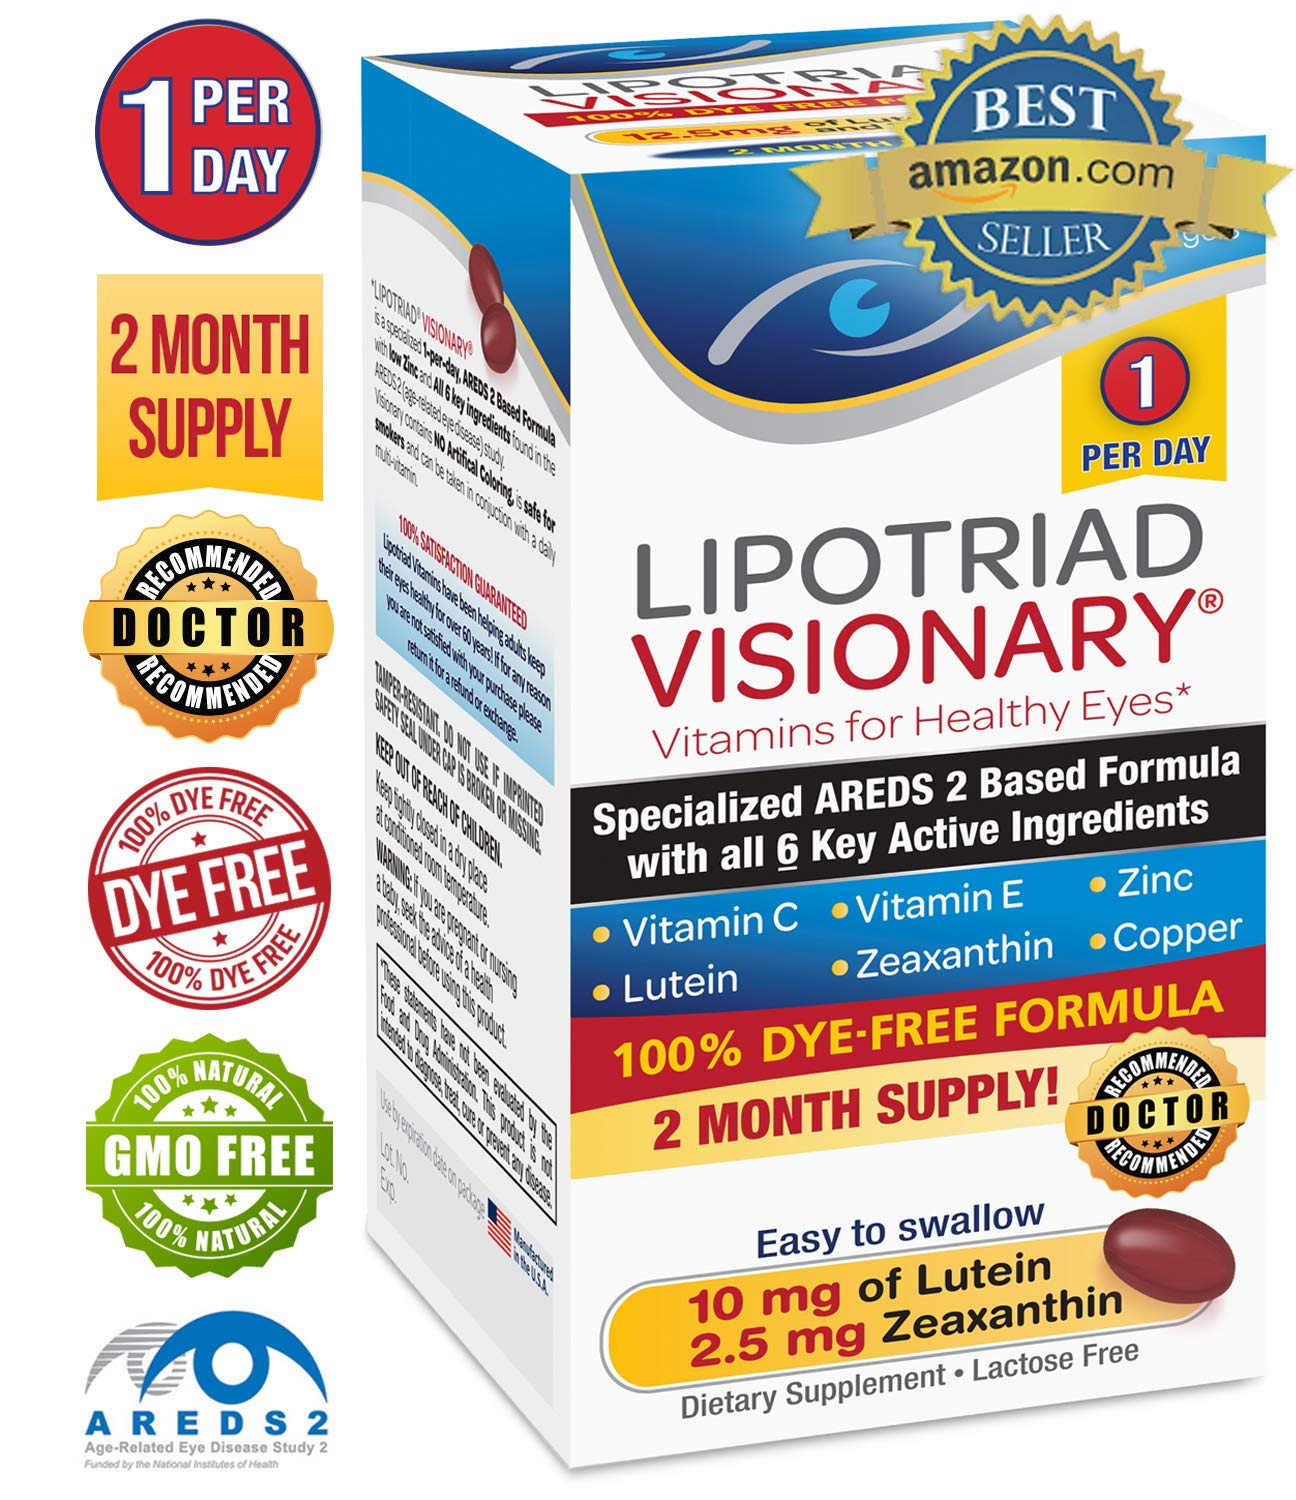 Lipotriad Visionary 1 Per Day AREDS 2 Eye Vitamin & Mineral Supplement | All 6 key ingredients in the AREDS 2 Study | Dye Free, Low Zinc, Safe for Smokers, Easy to Swallow | 2 Mo Supply - 60ct by Lipotriad